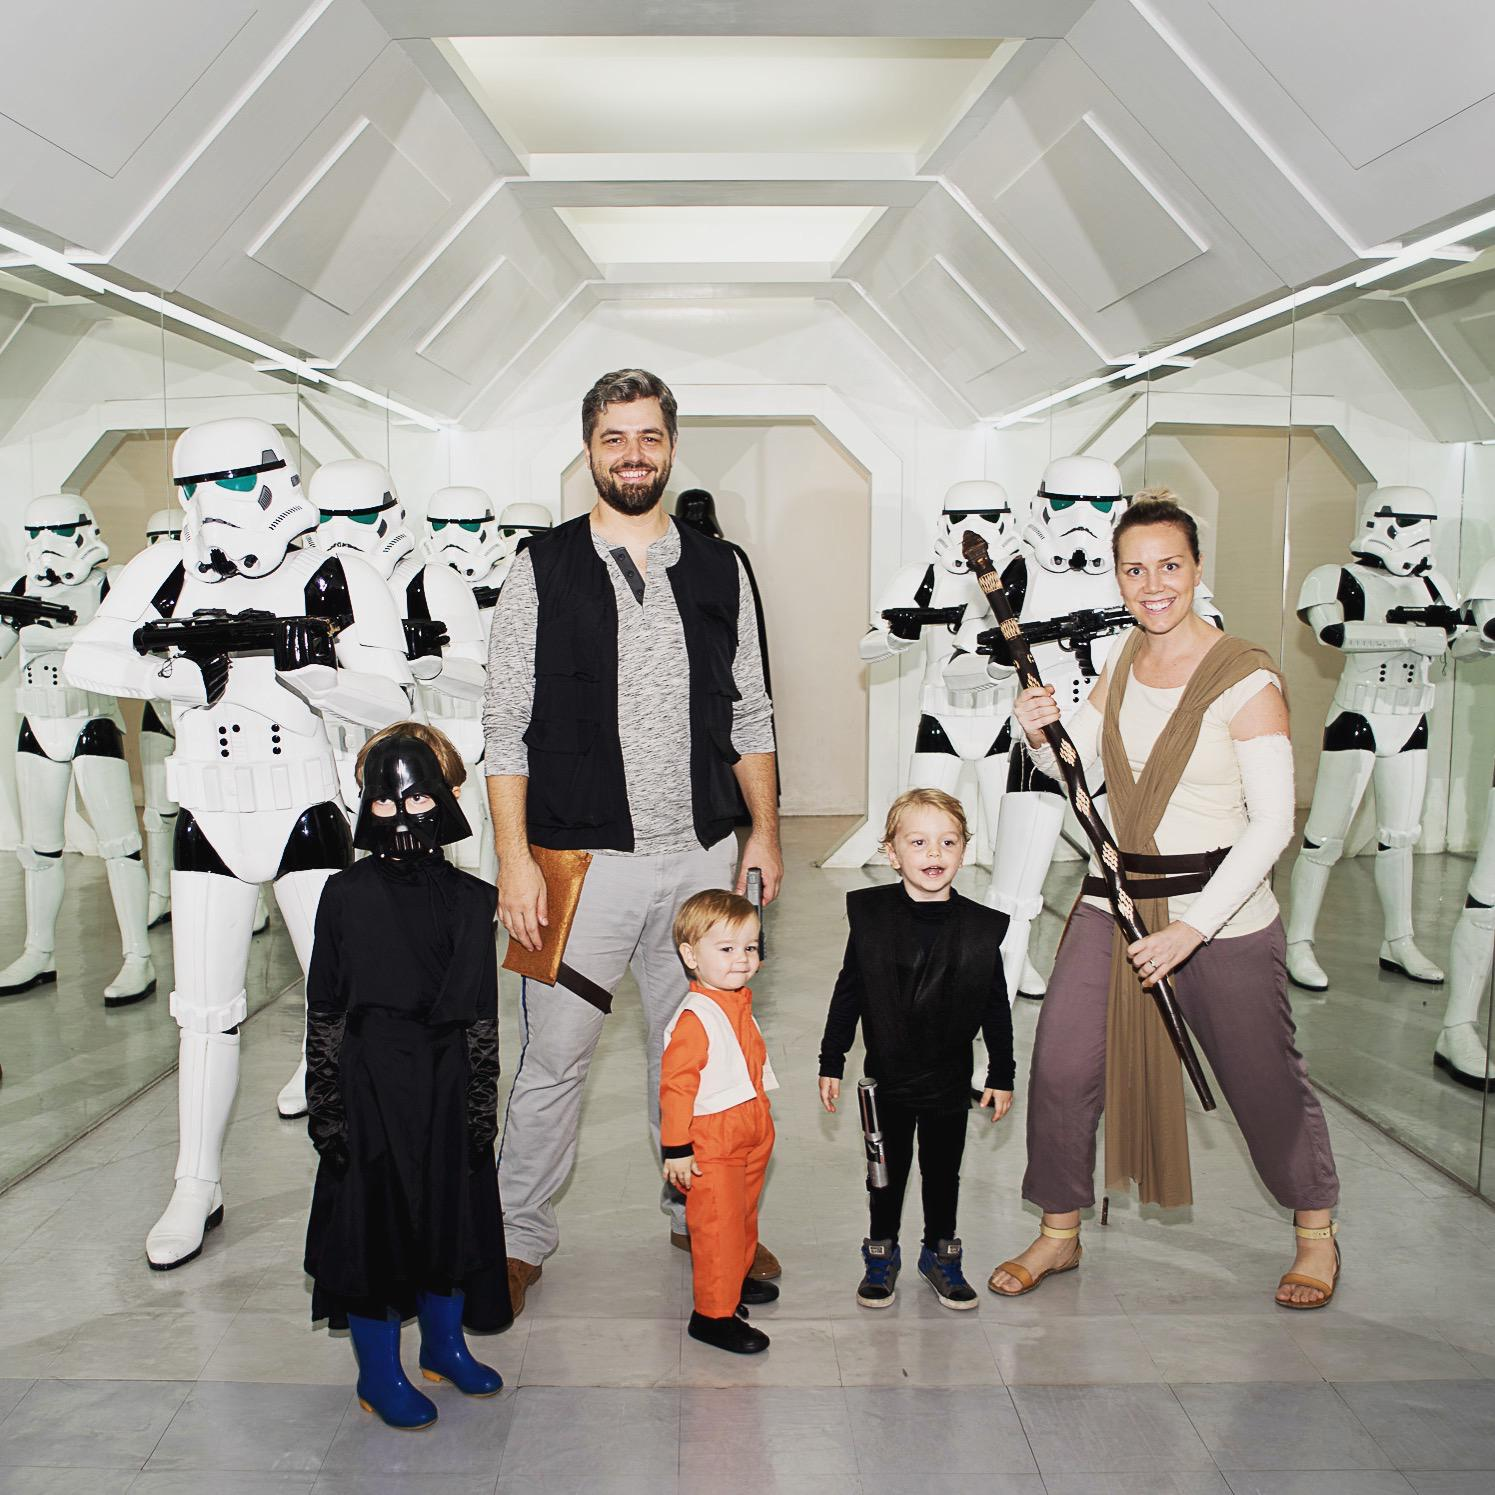 Our Star Wars family, as photographed by Lianne Bacorro.